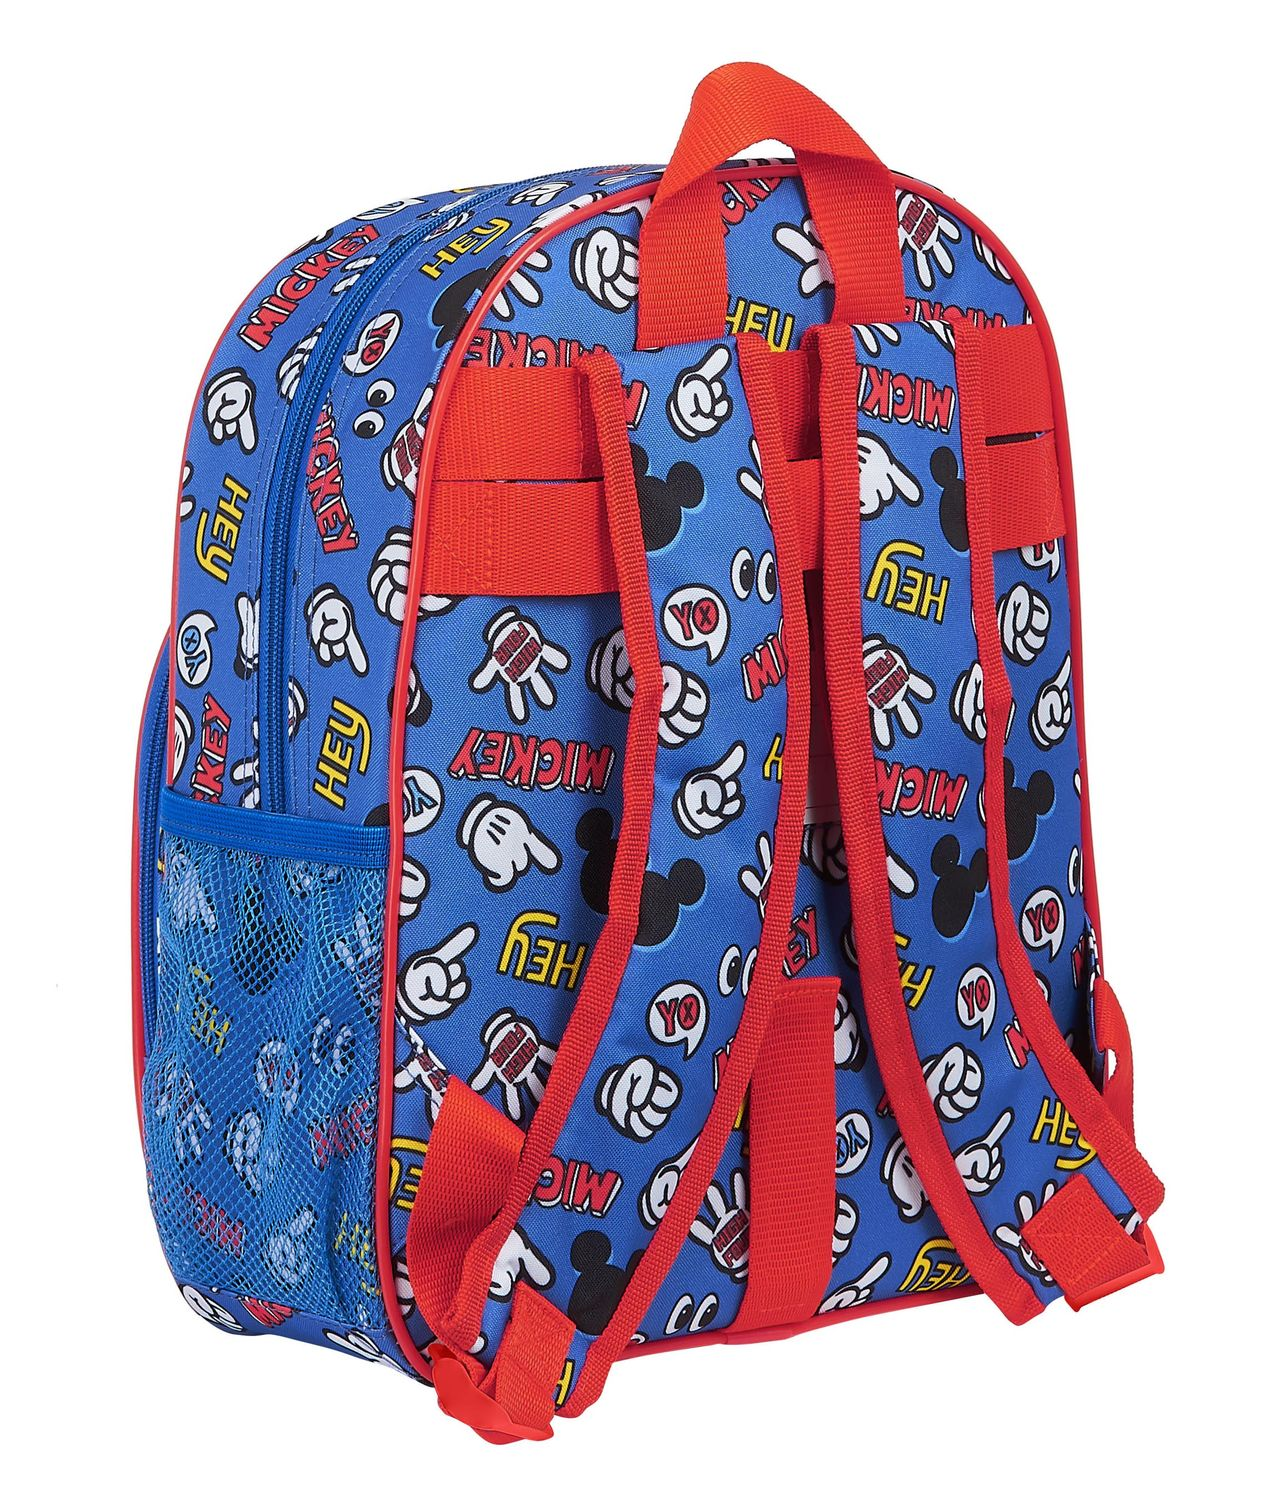 Disney MICKEY MOUSE THINGS Backpack Rucksack 34cm  – image 2